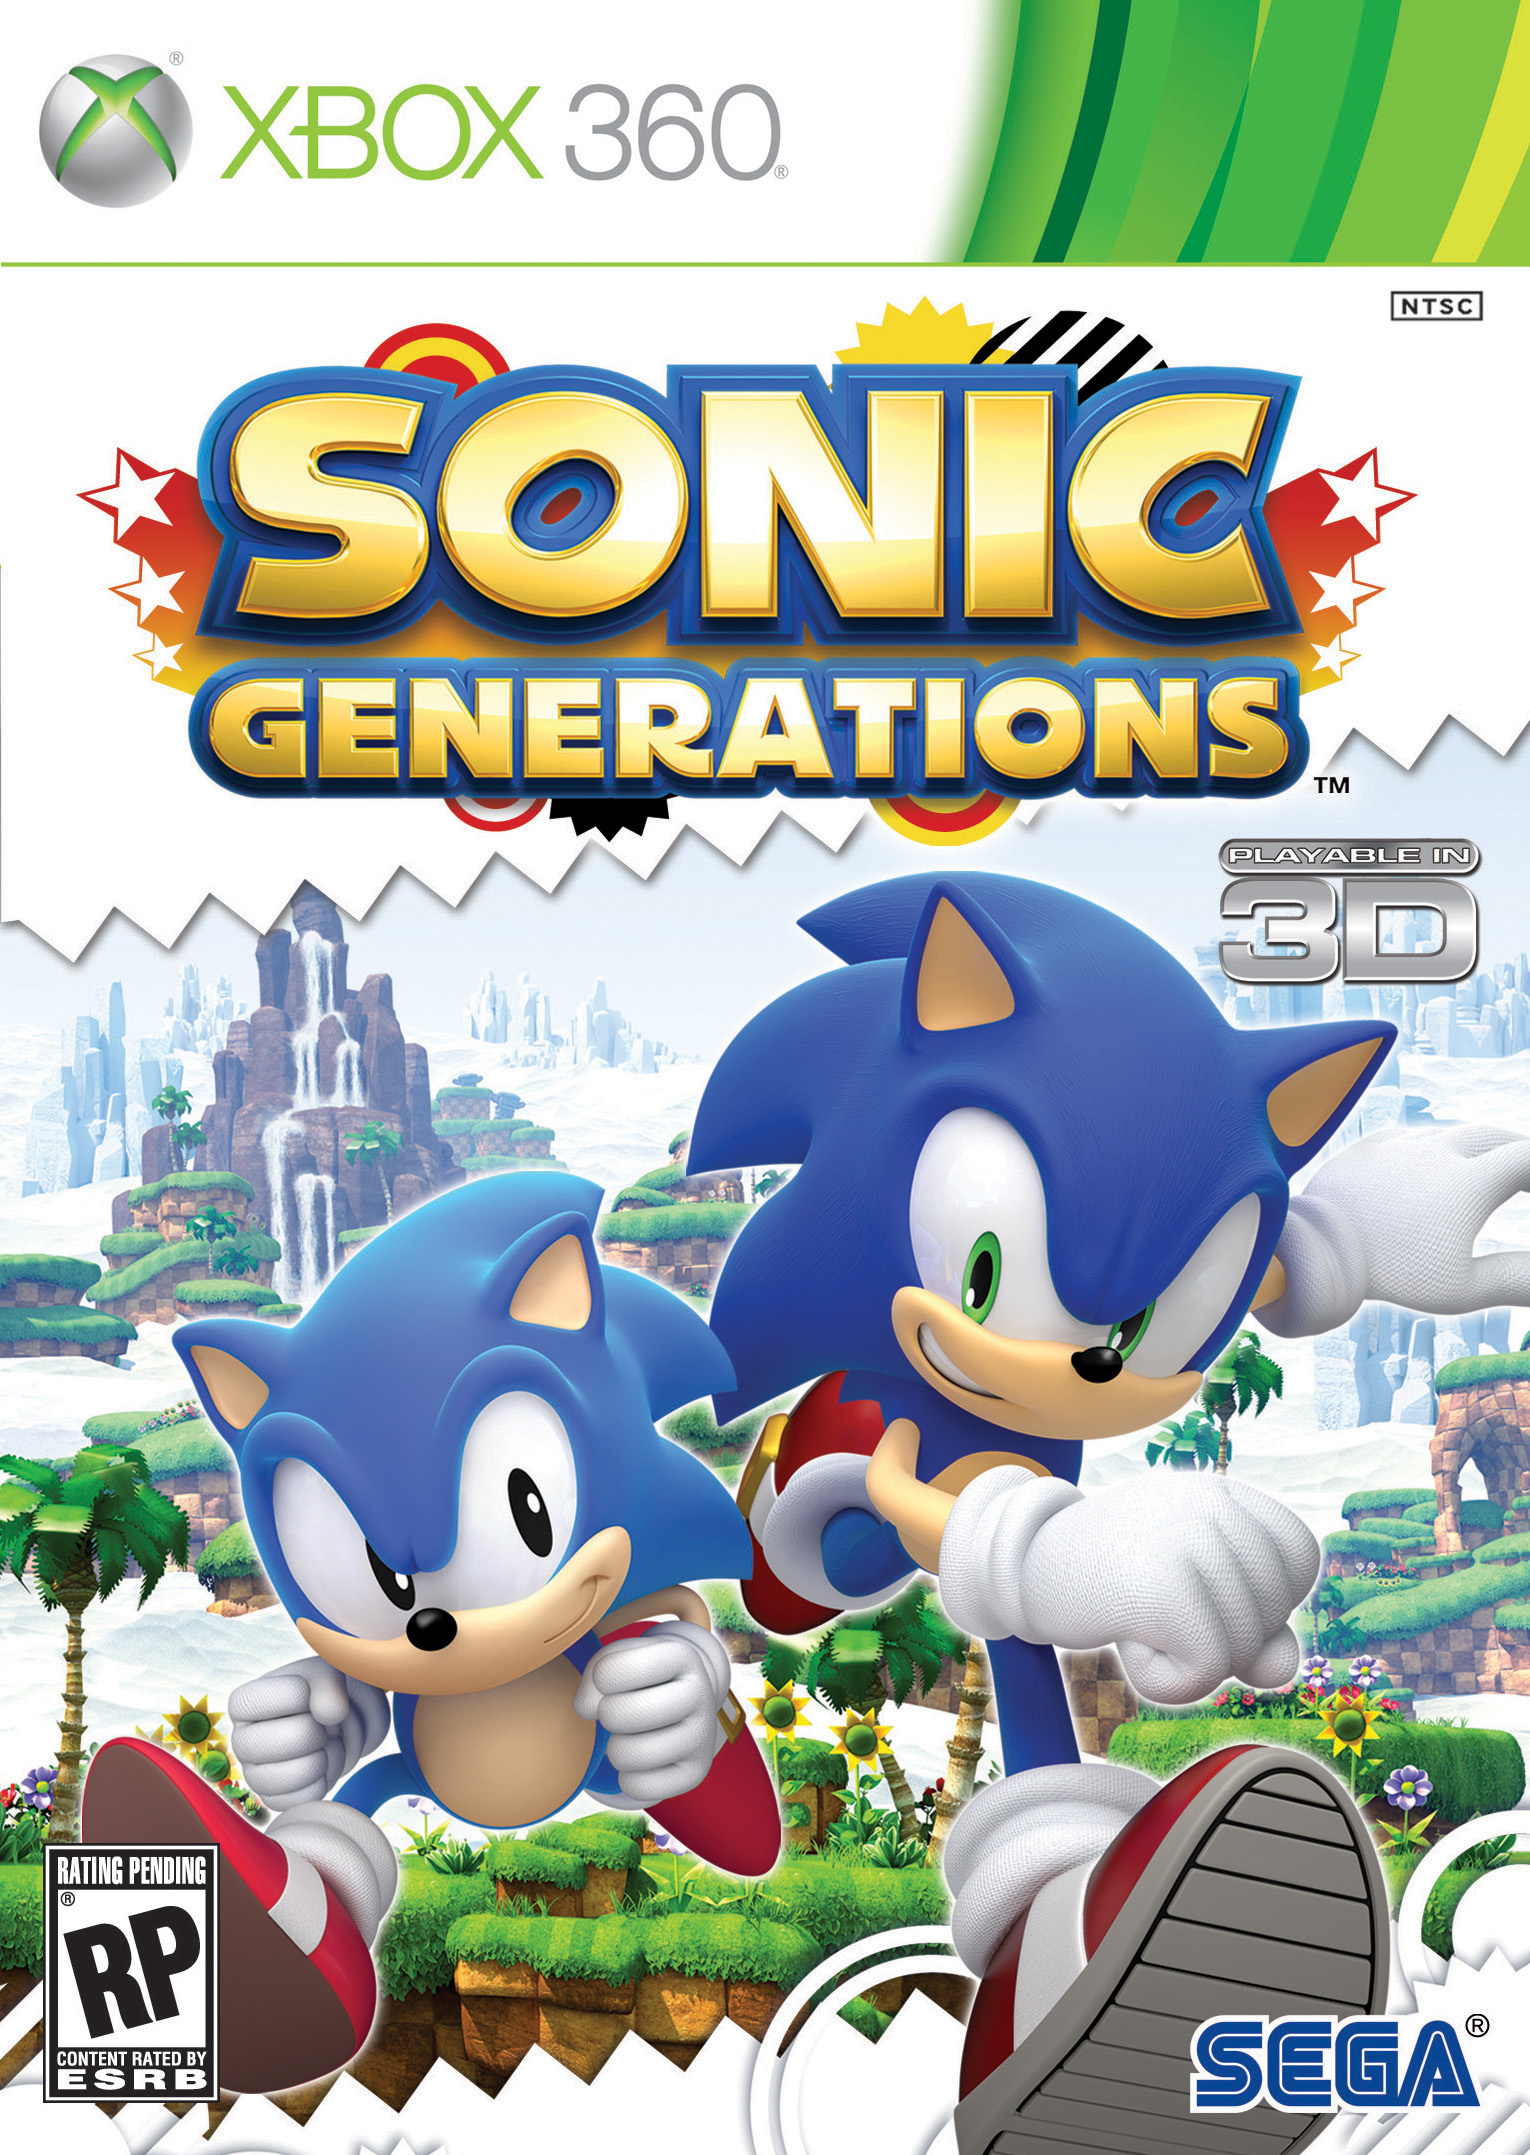 Sonic-Generations-360-box-art